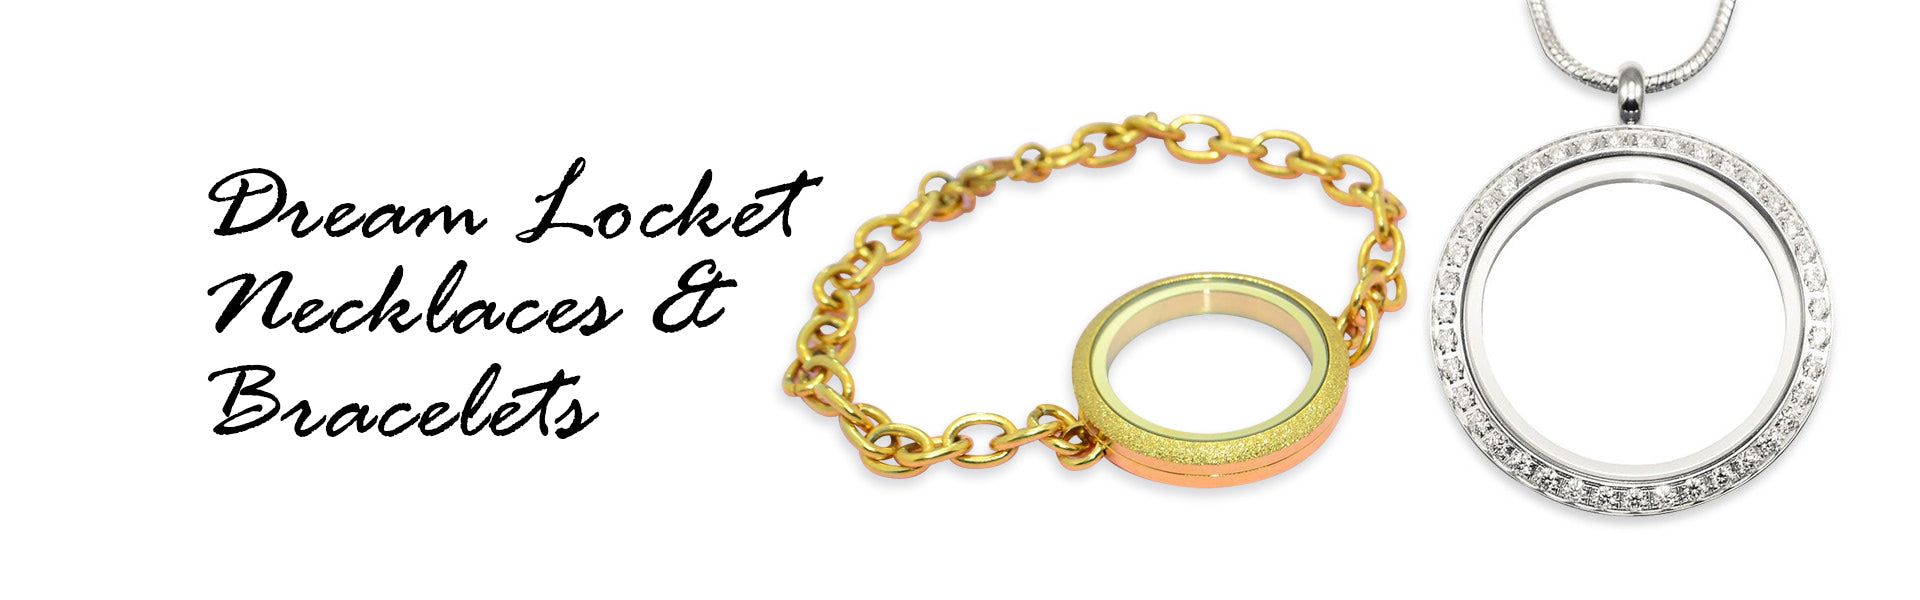 Dream Locket Necklaces & Bracelets